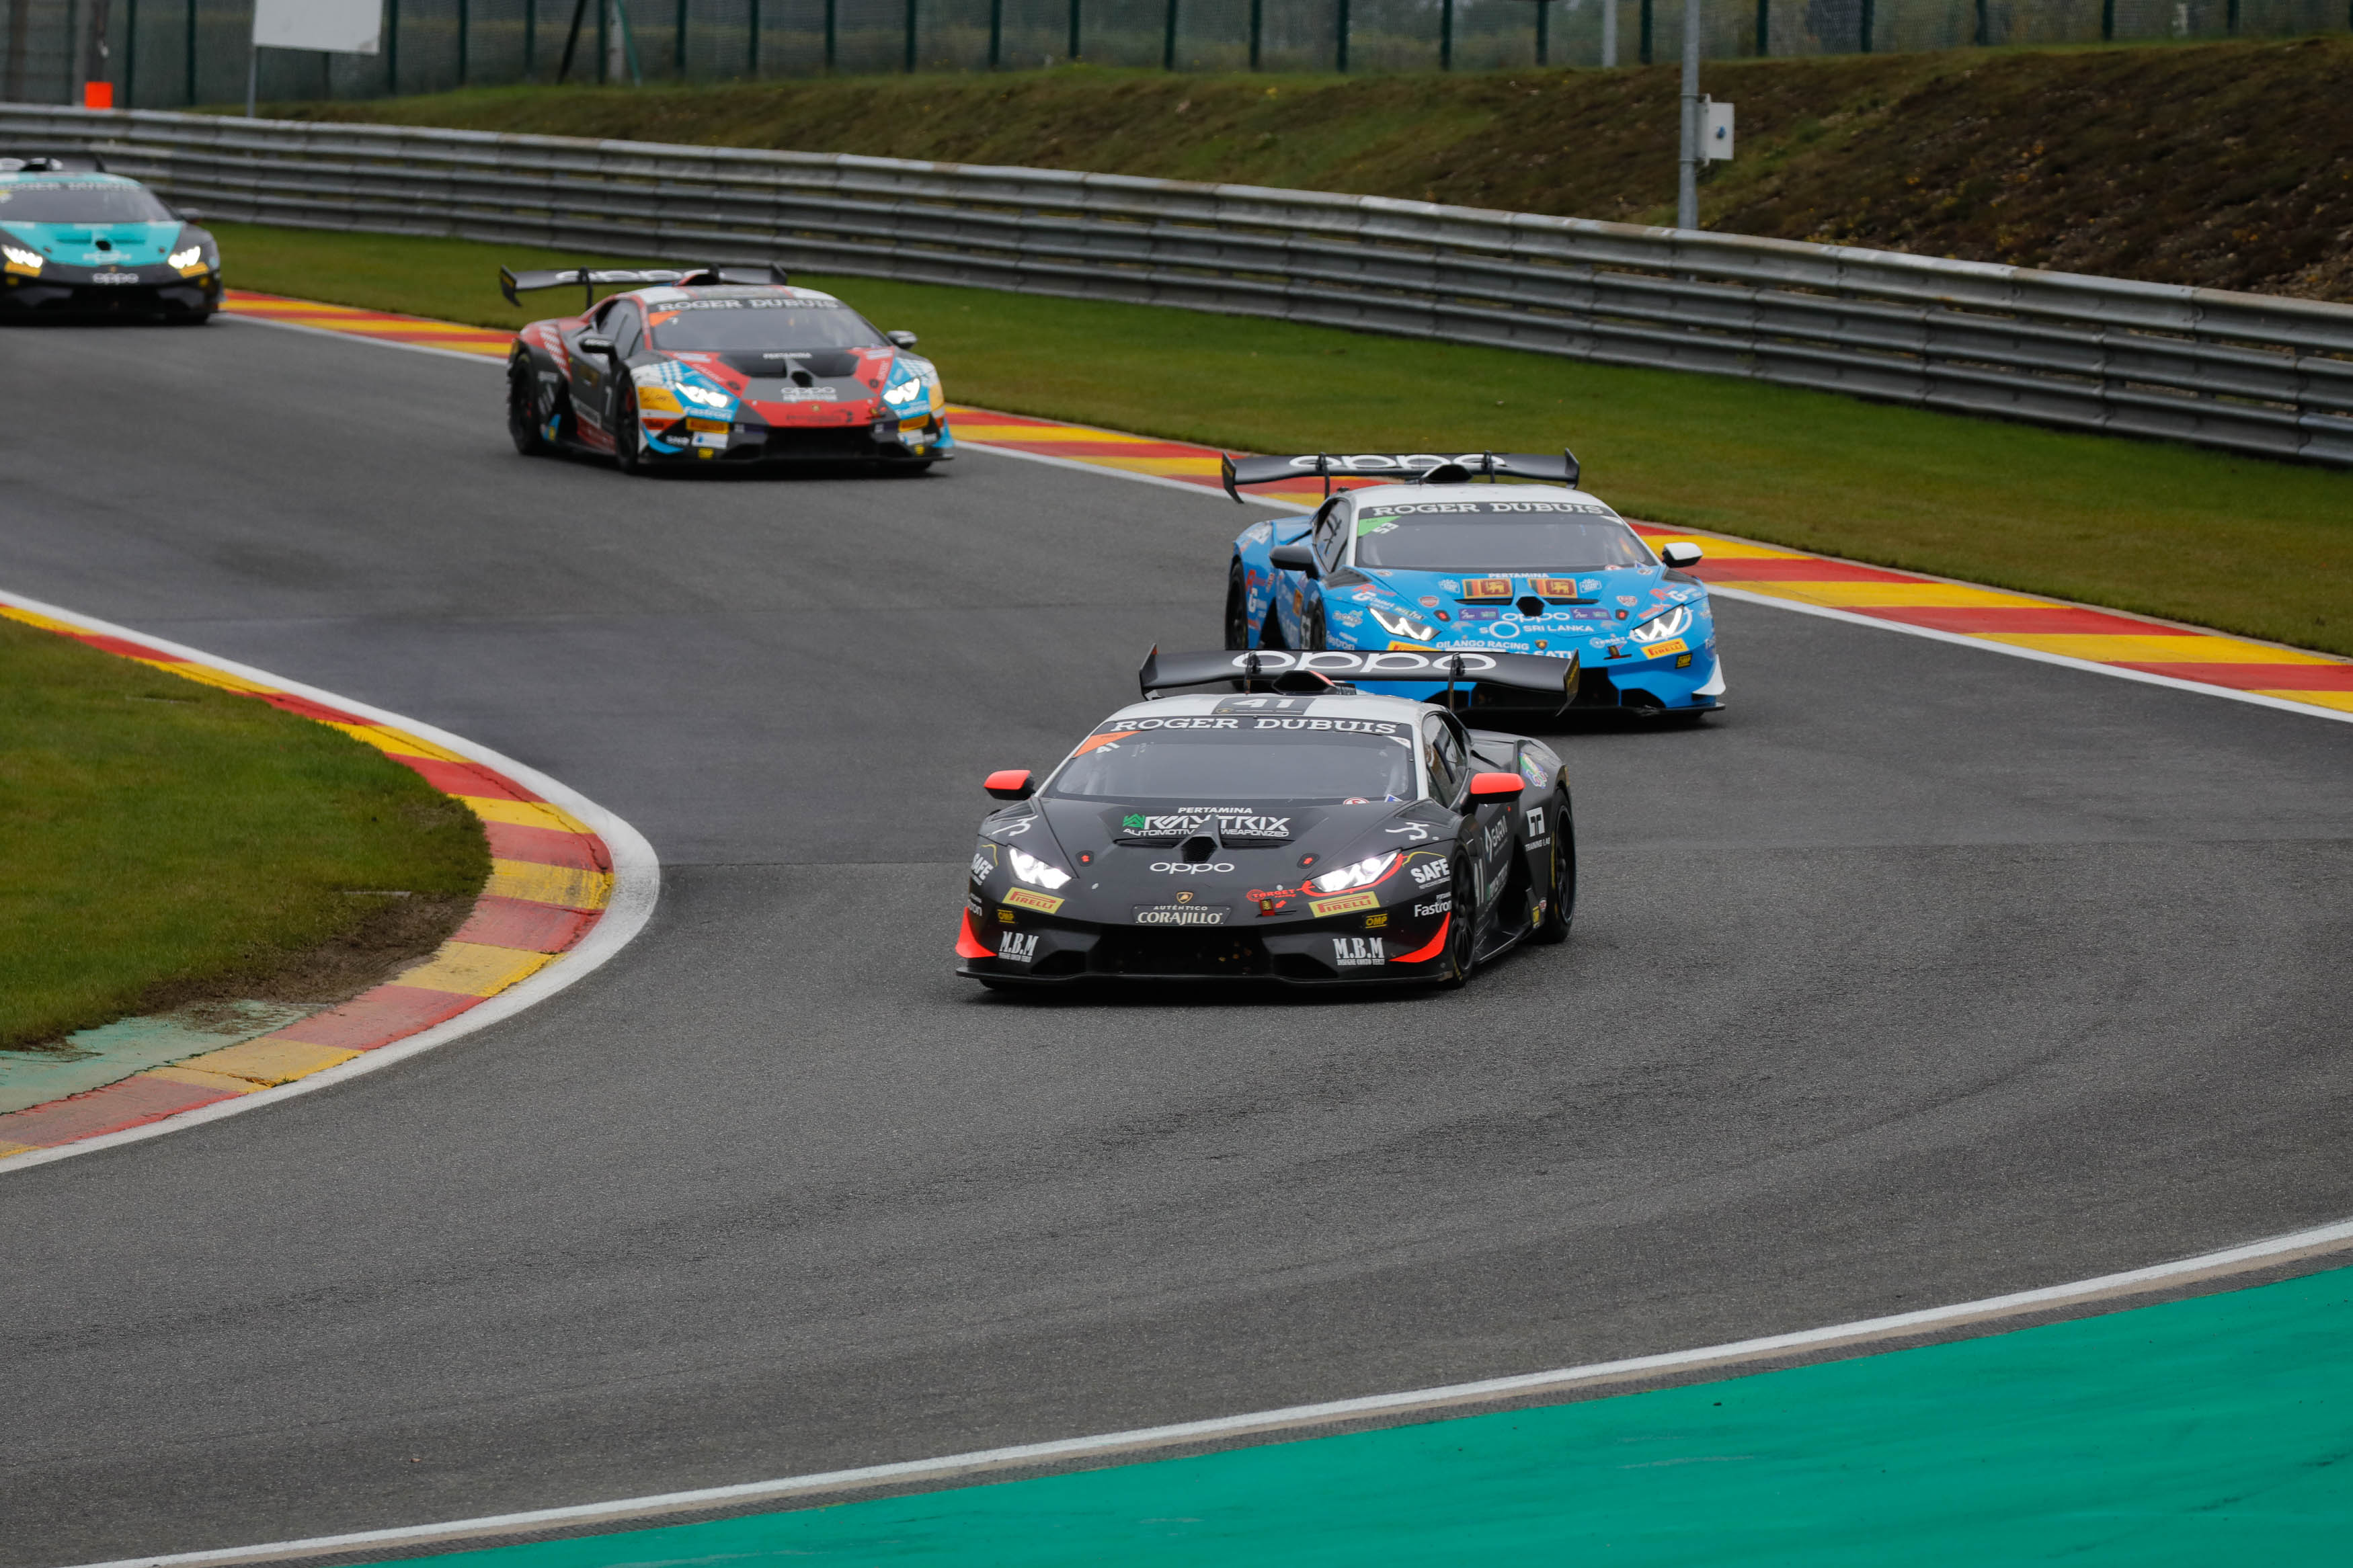 Trophies and scares for Target Racing at in Super Trofeo Lamborghini Spa round